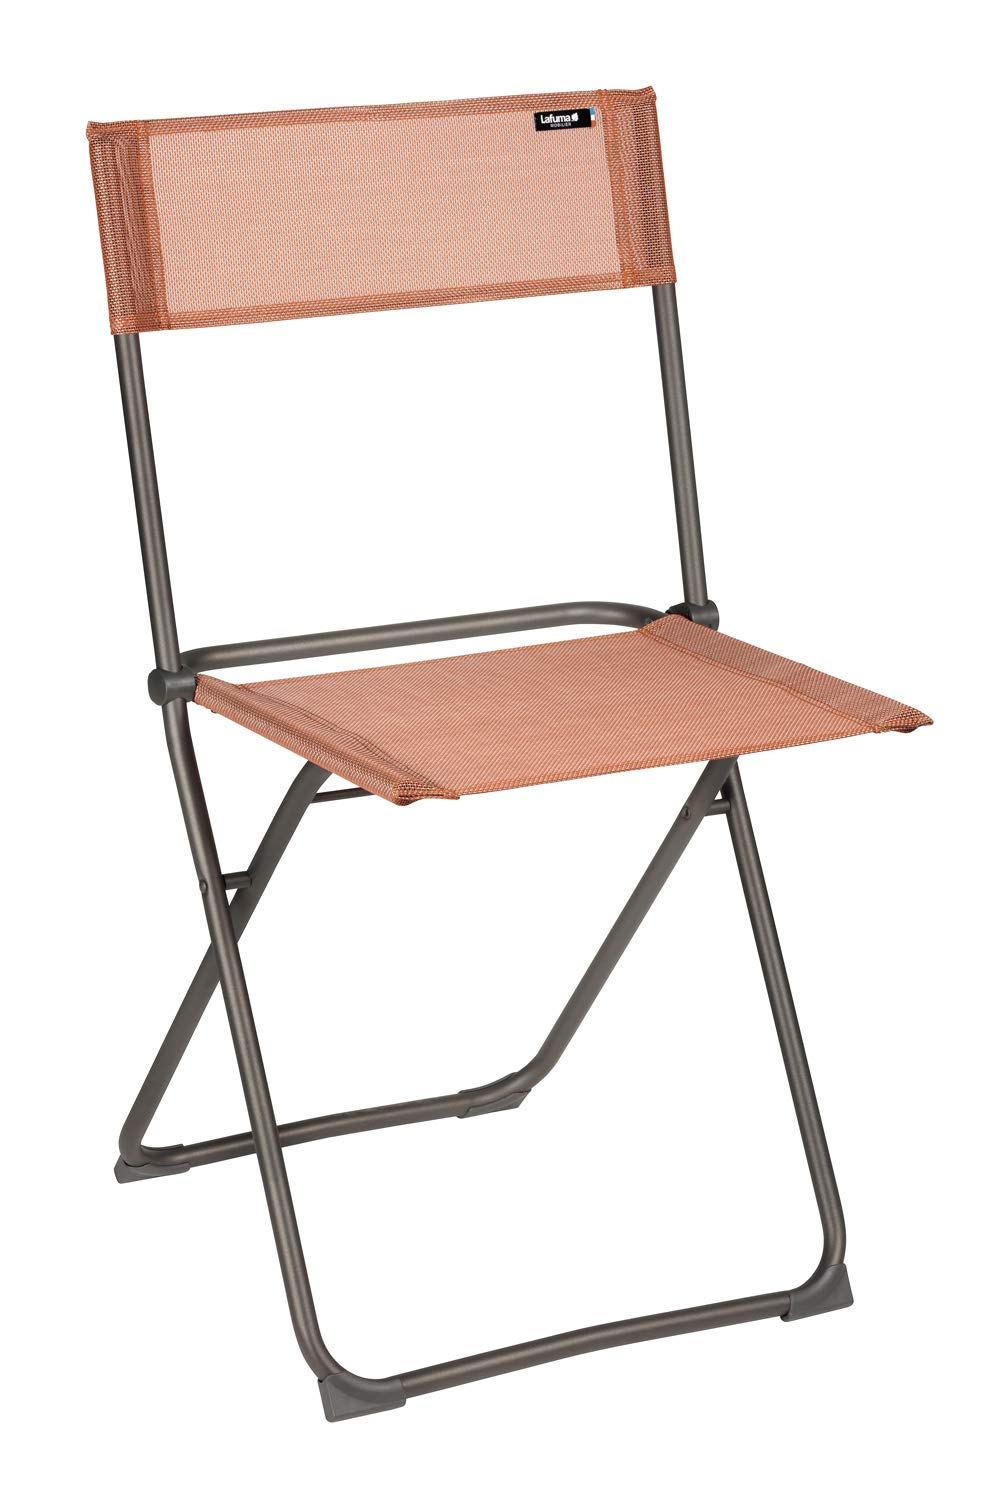 Lafuma LFM26008899 Terrace Dining-Foldable Chairs and Tables, Terracotta